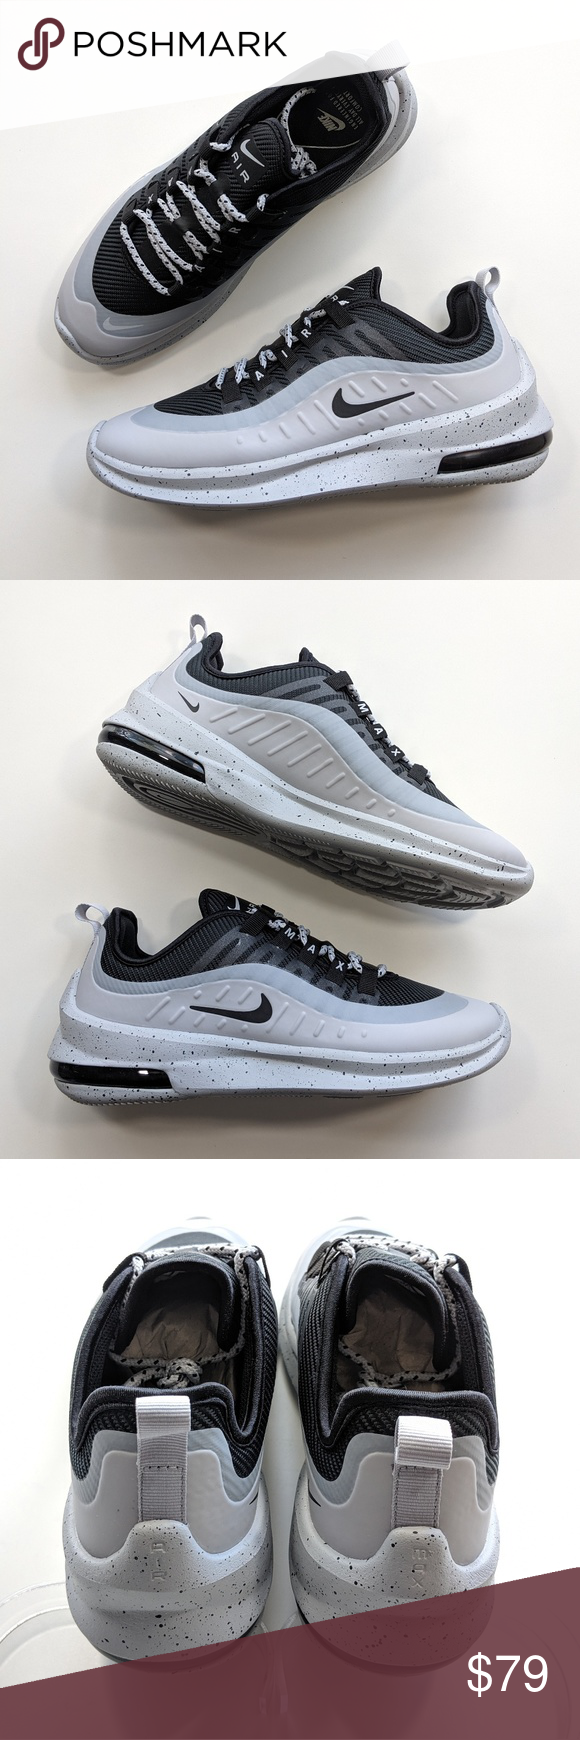 prosperidad Documento Sin aliento  NEW Nike Air Max Axis Premium Black/Wolf Grey | Nike air max, New nike air,  Black wolf